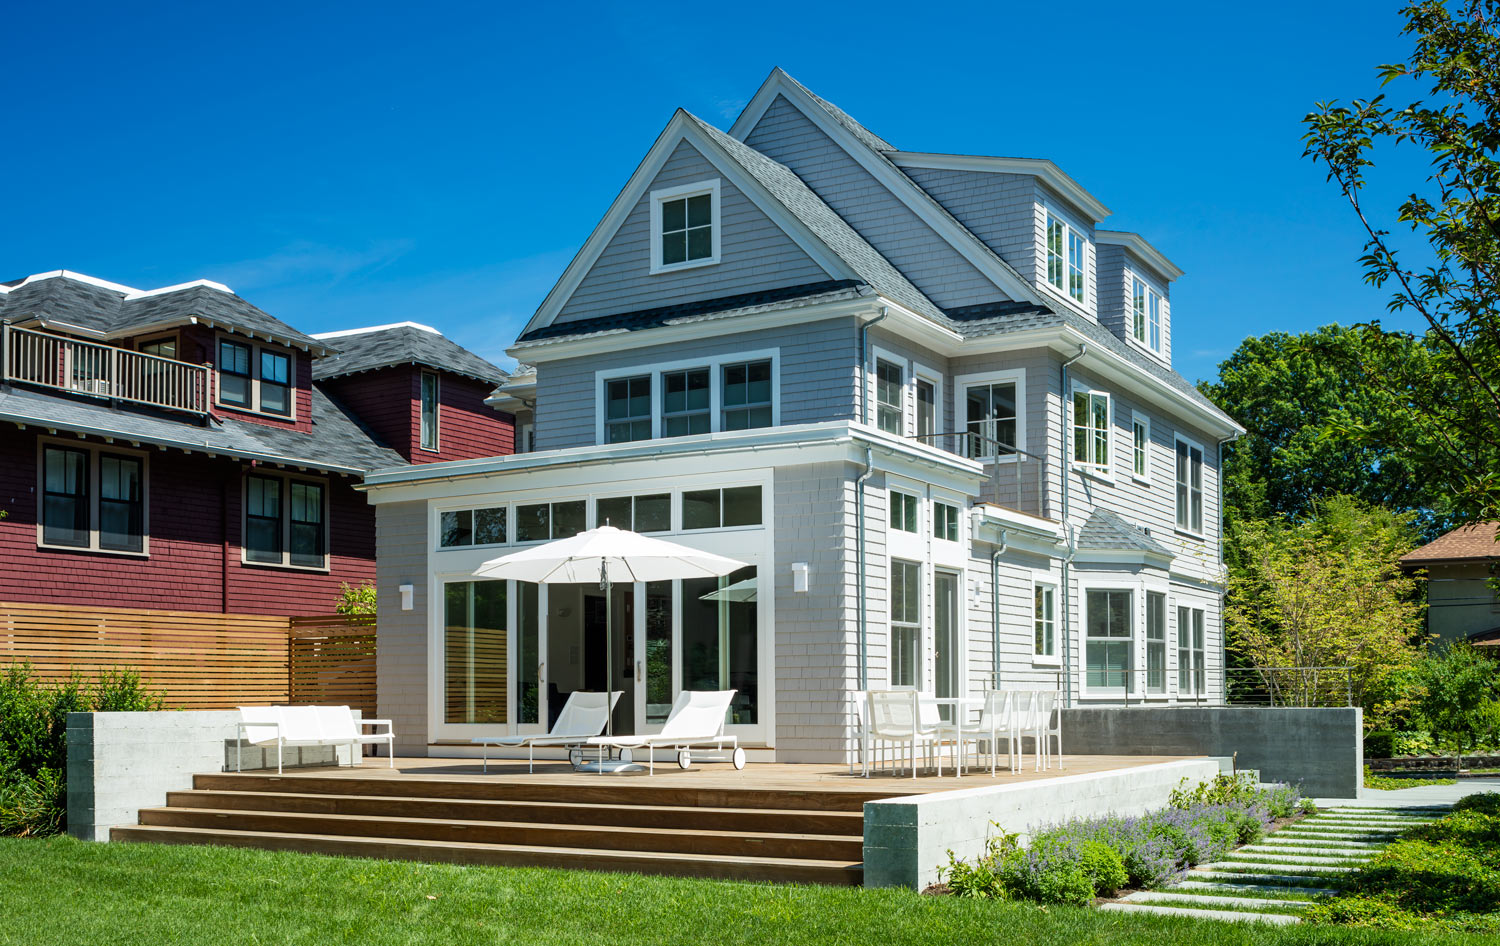 Architecture-Cambridge-MA-Residential-Remodel.jpg